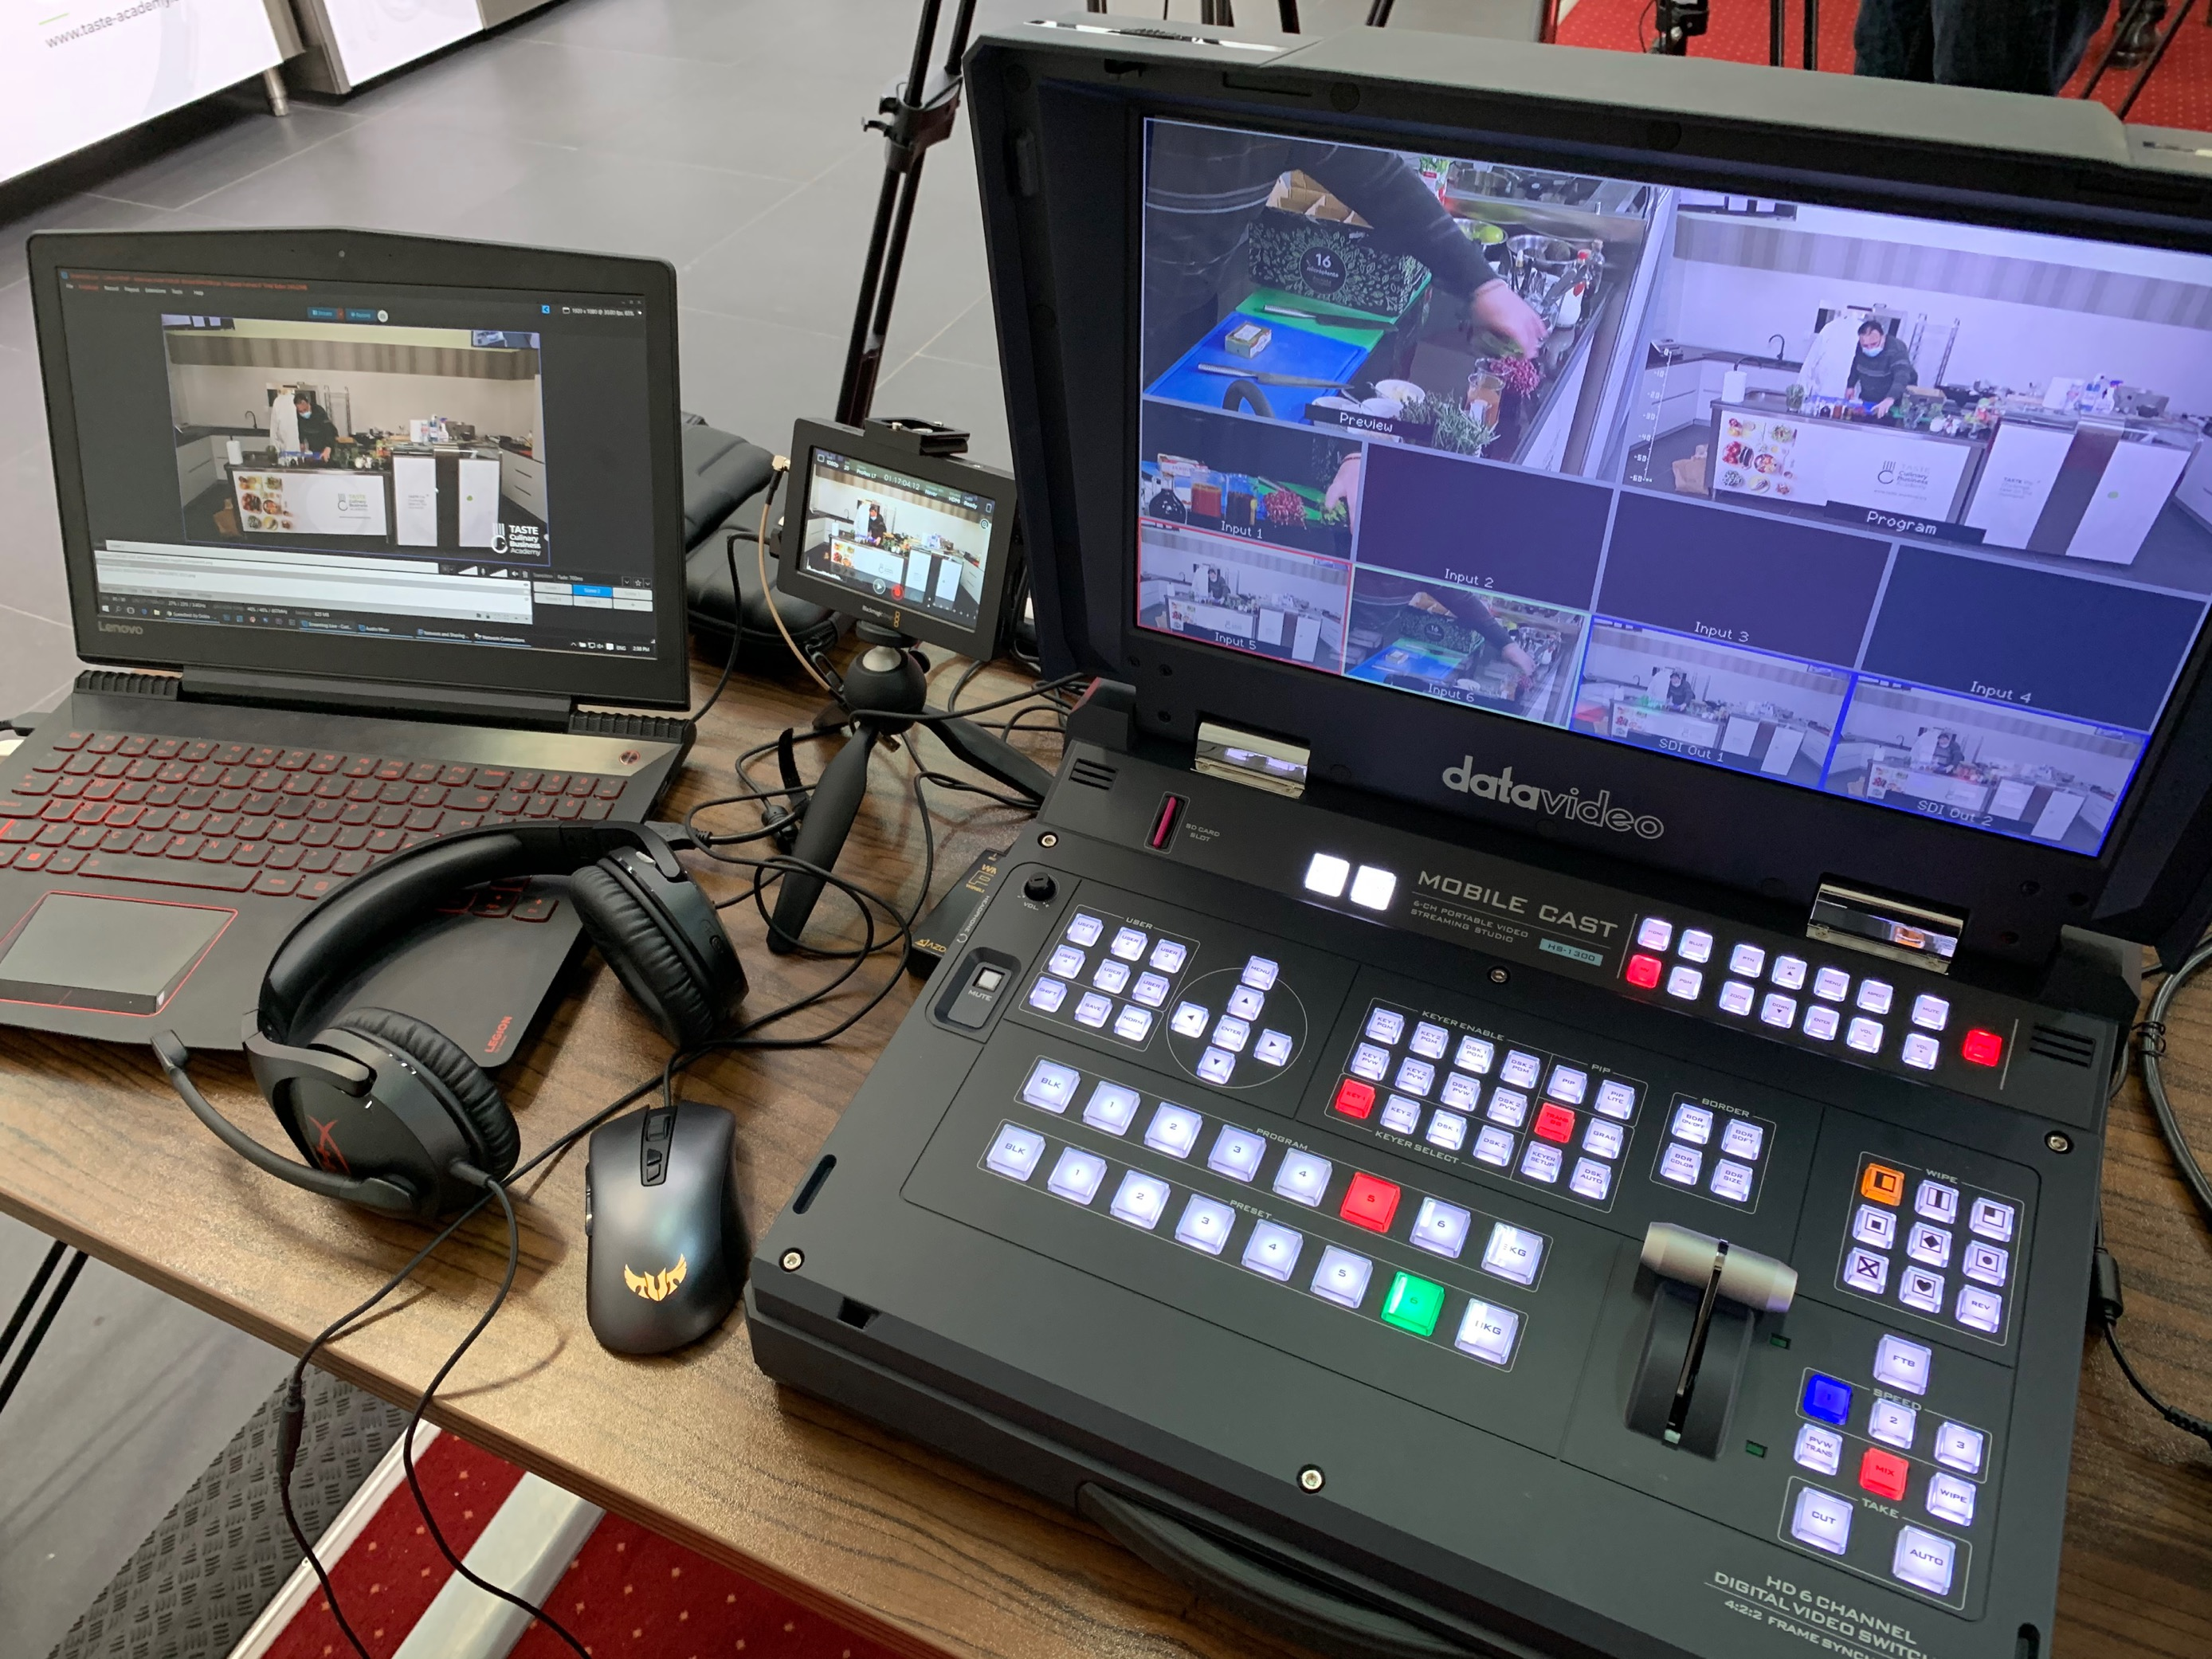 Behind the scenes from the non-stop innovation in culinary business management webinar